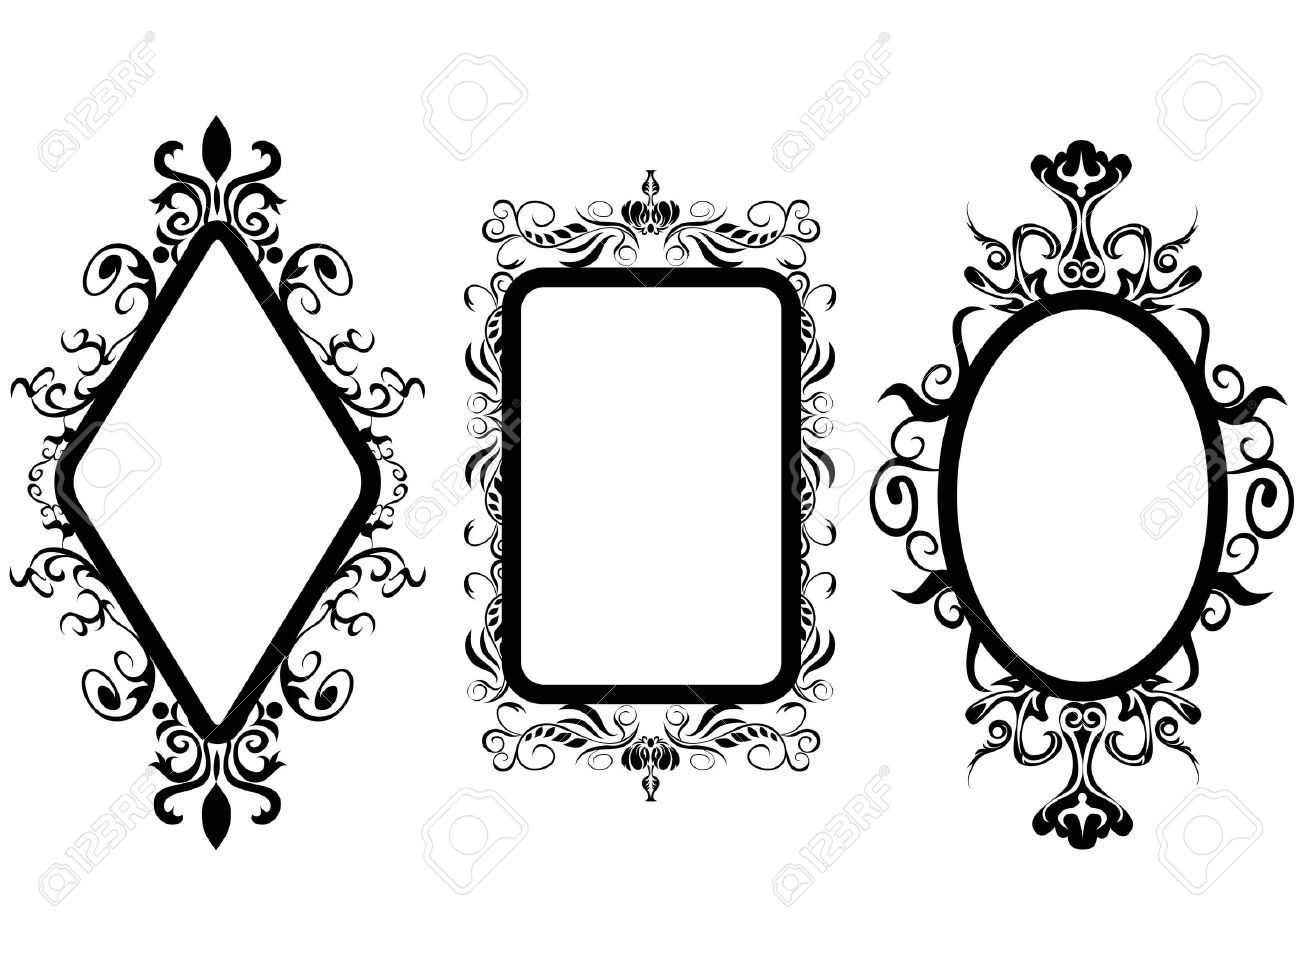 isolated 3 different shpes of vintage frame mirror on white background Stock Vector - 20707816